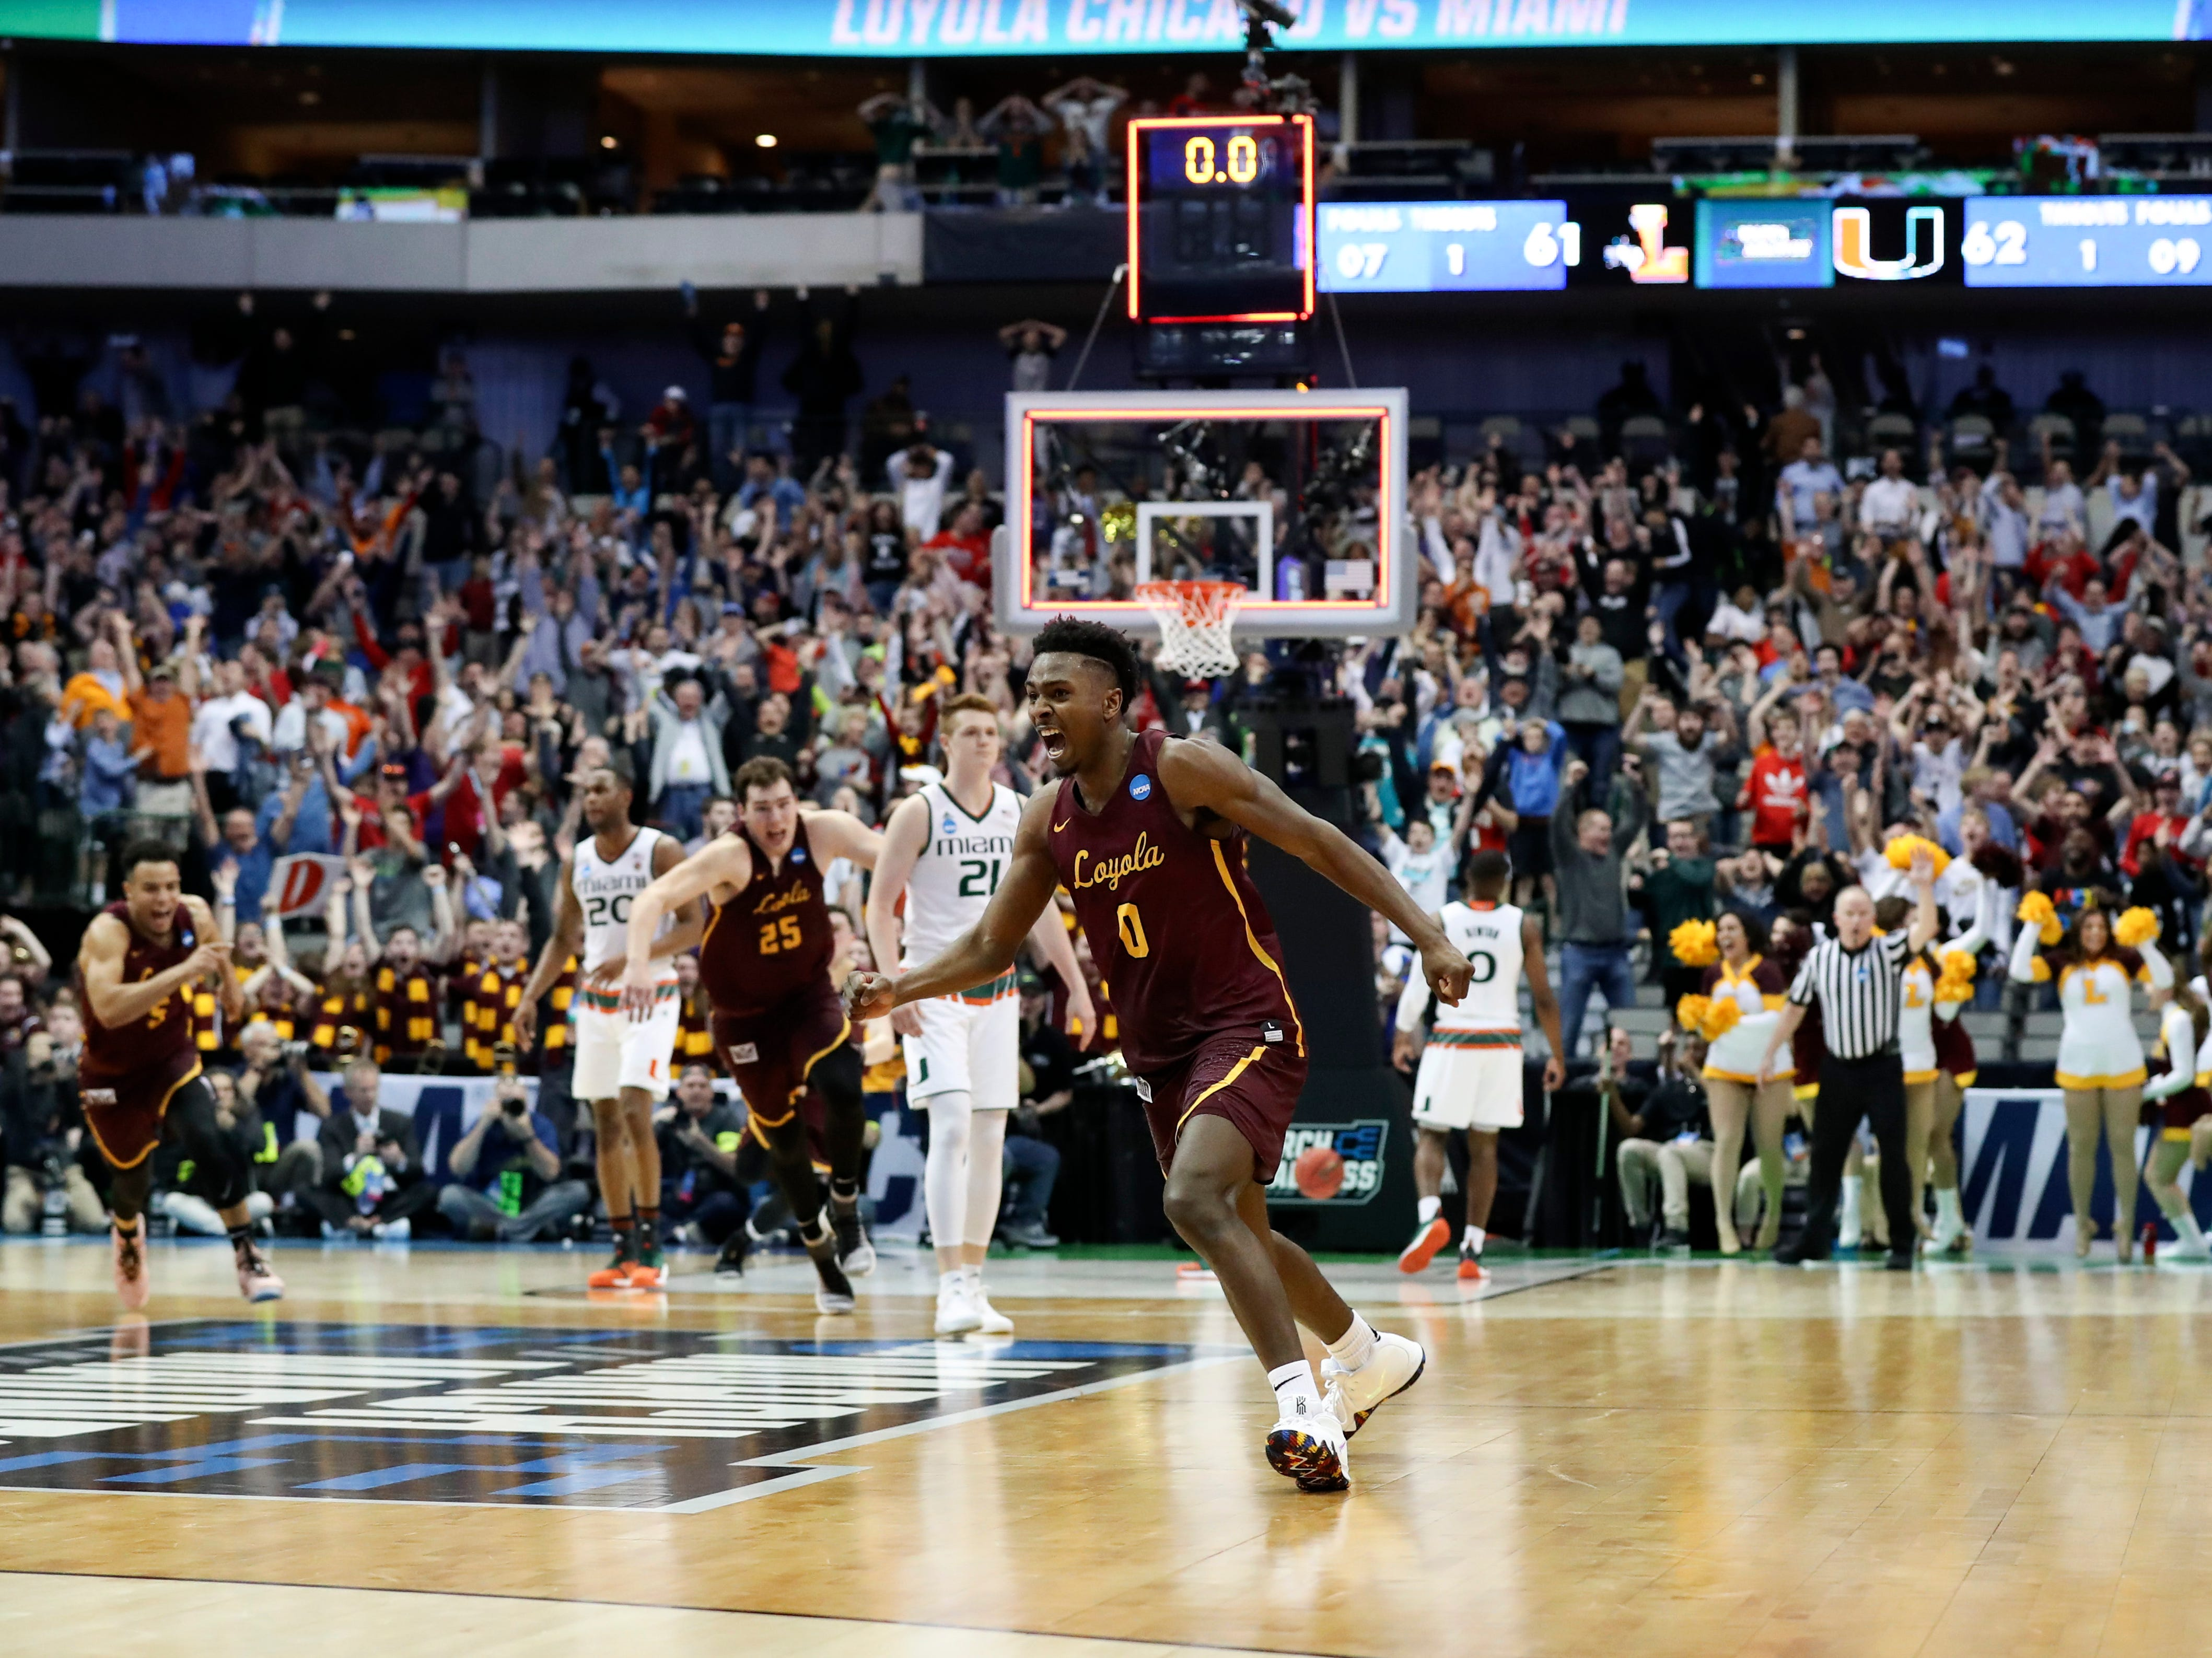 March 15: Loyola-Chicago guard Donte Ingram (0) celebrates after hitting the game-winning shot against the Miami (Fl) Hurricanes in the first round of the NCAA tournament.